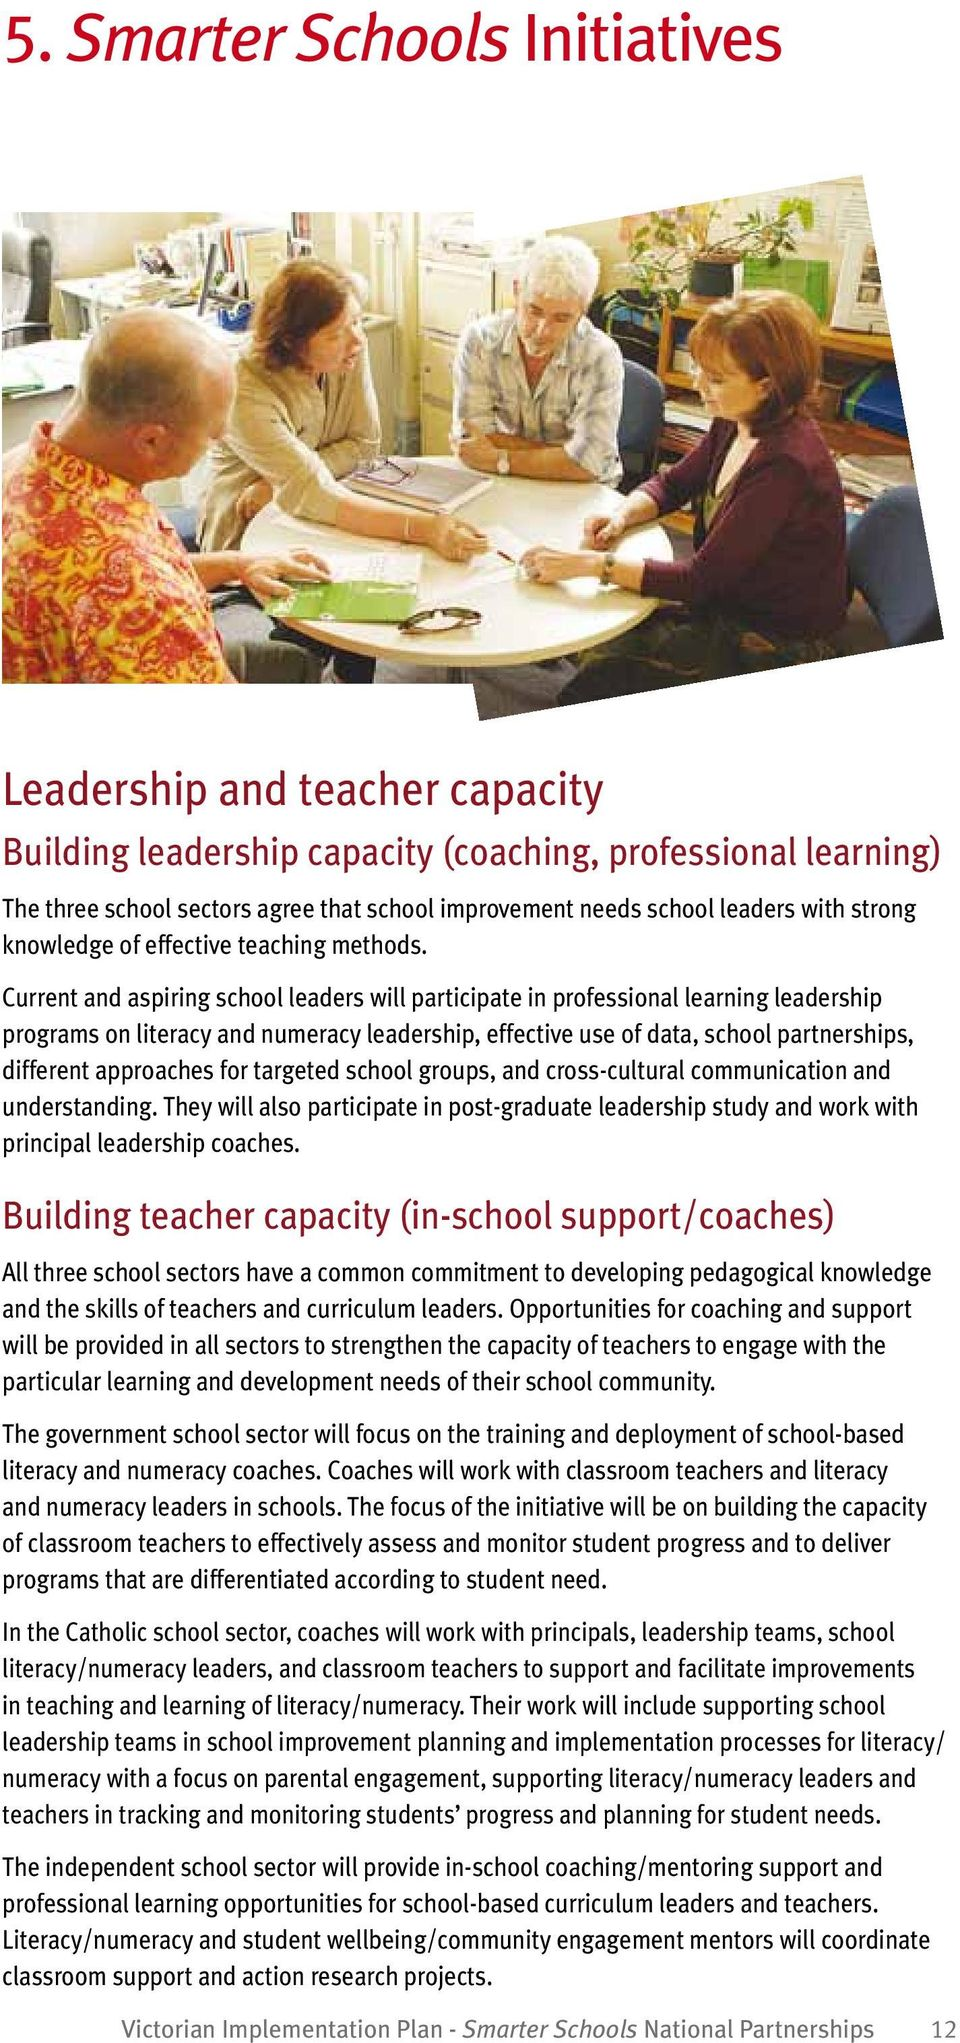 Current and aspiring school leaders will participate in professional learning leadership programs on literacy and numeracy leadership, effective use of data, school partnerships, different approaches